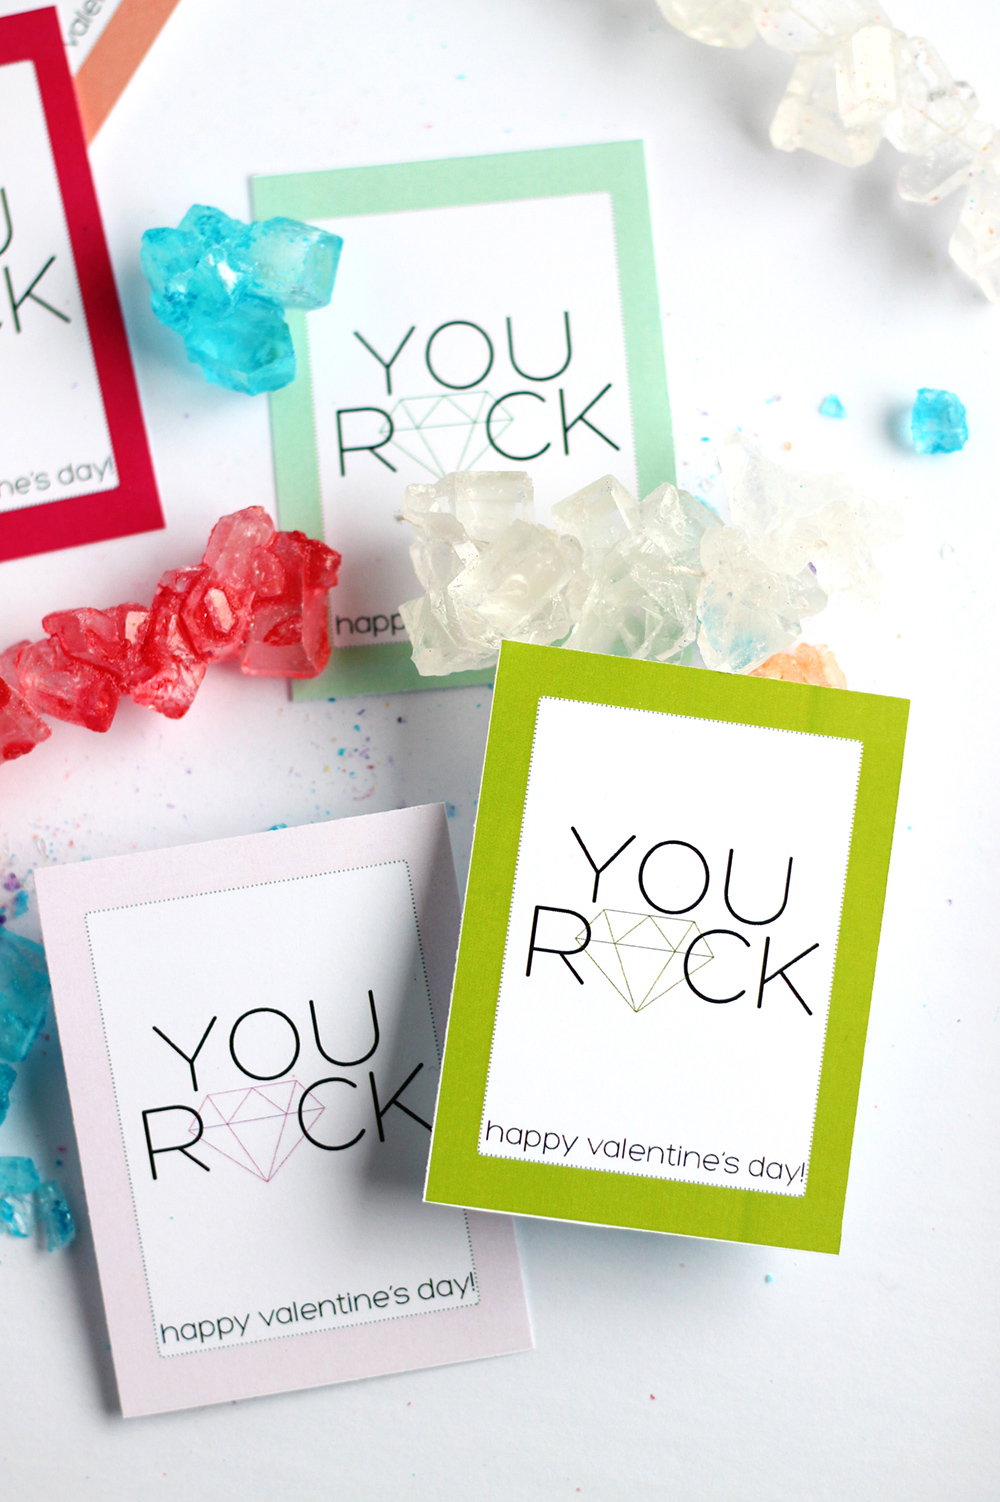 photograph about You Rock Valentine Printable identified as Print Yourself Rock Printable Valentine - Squirrelly Minds